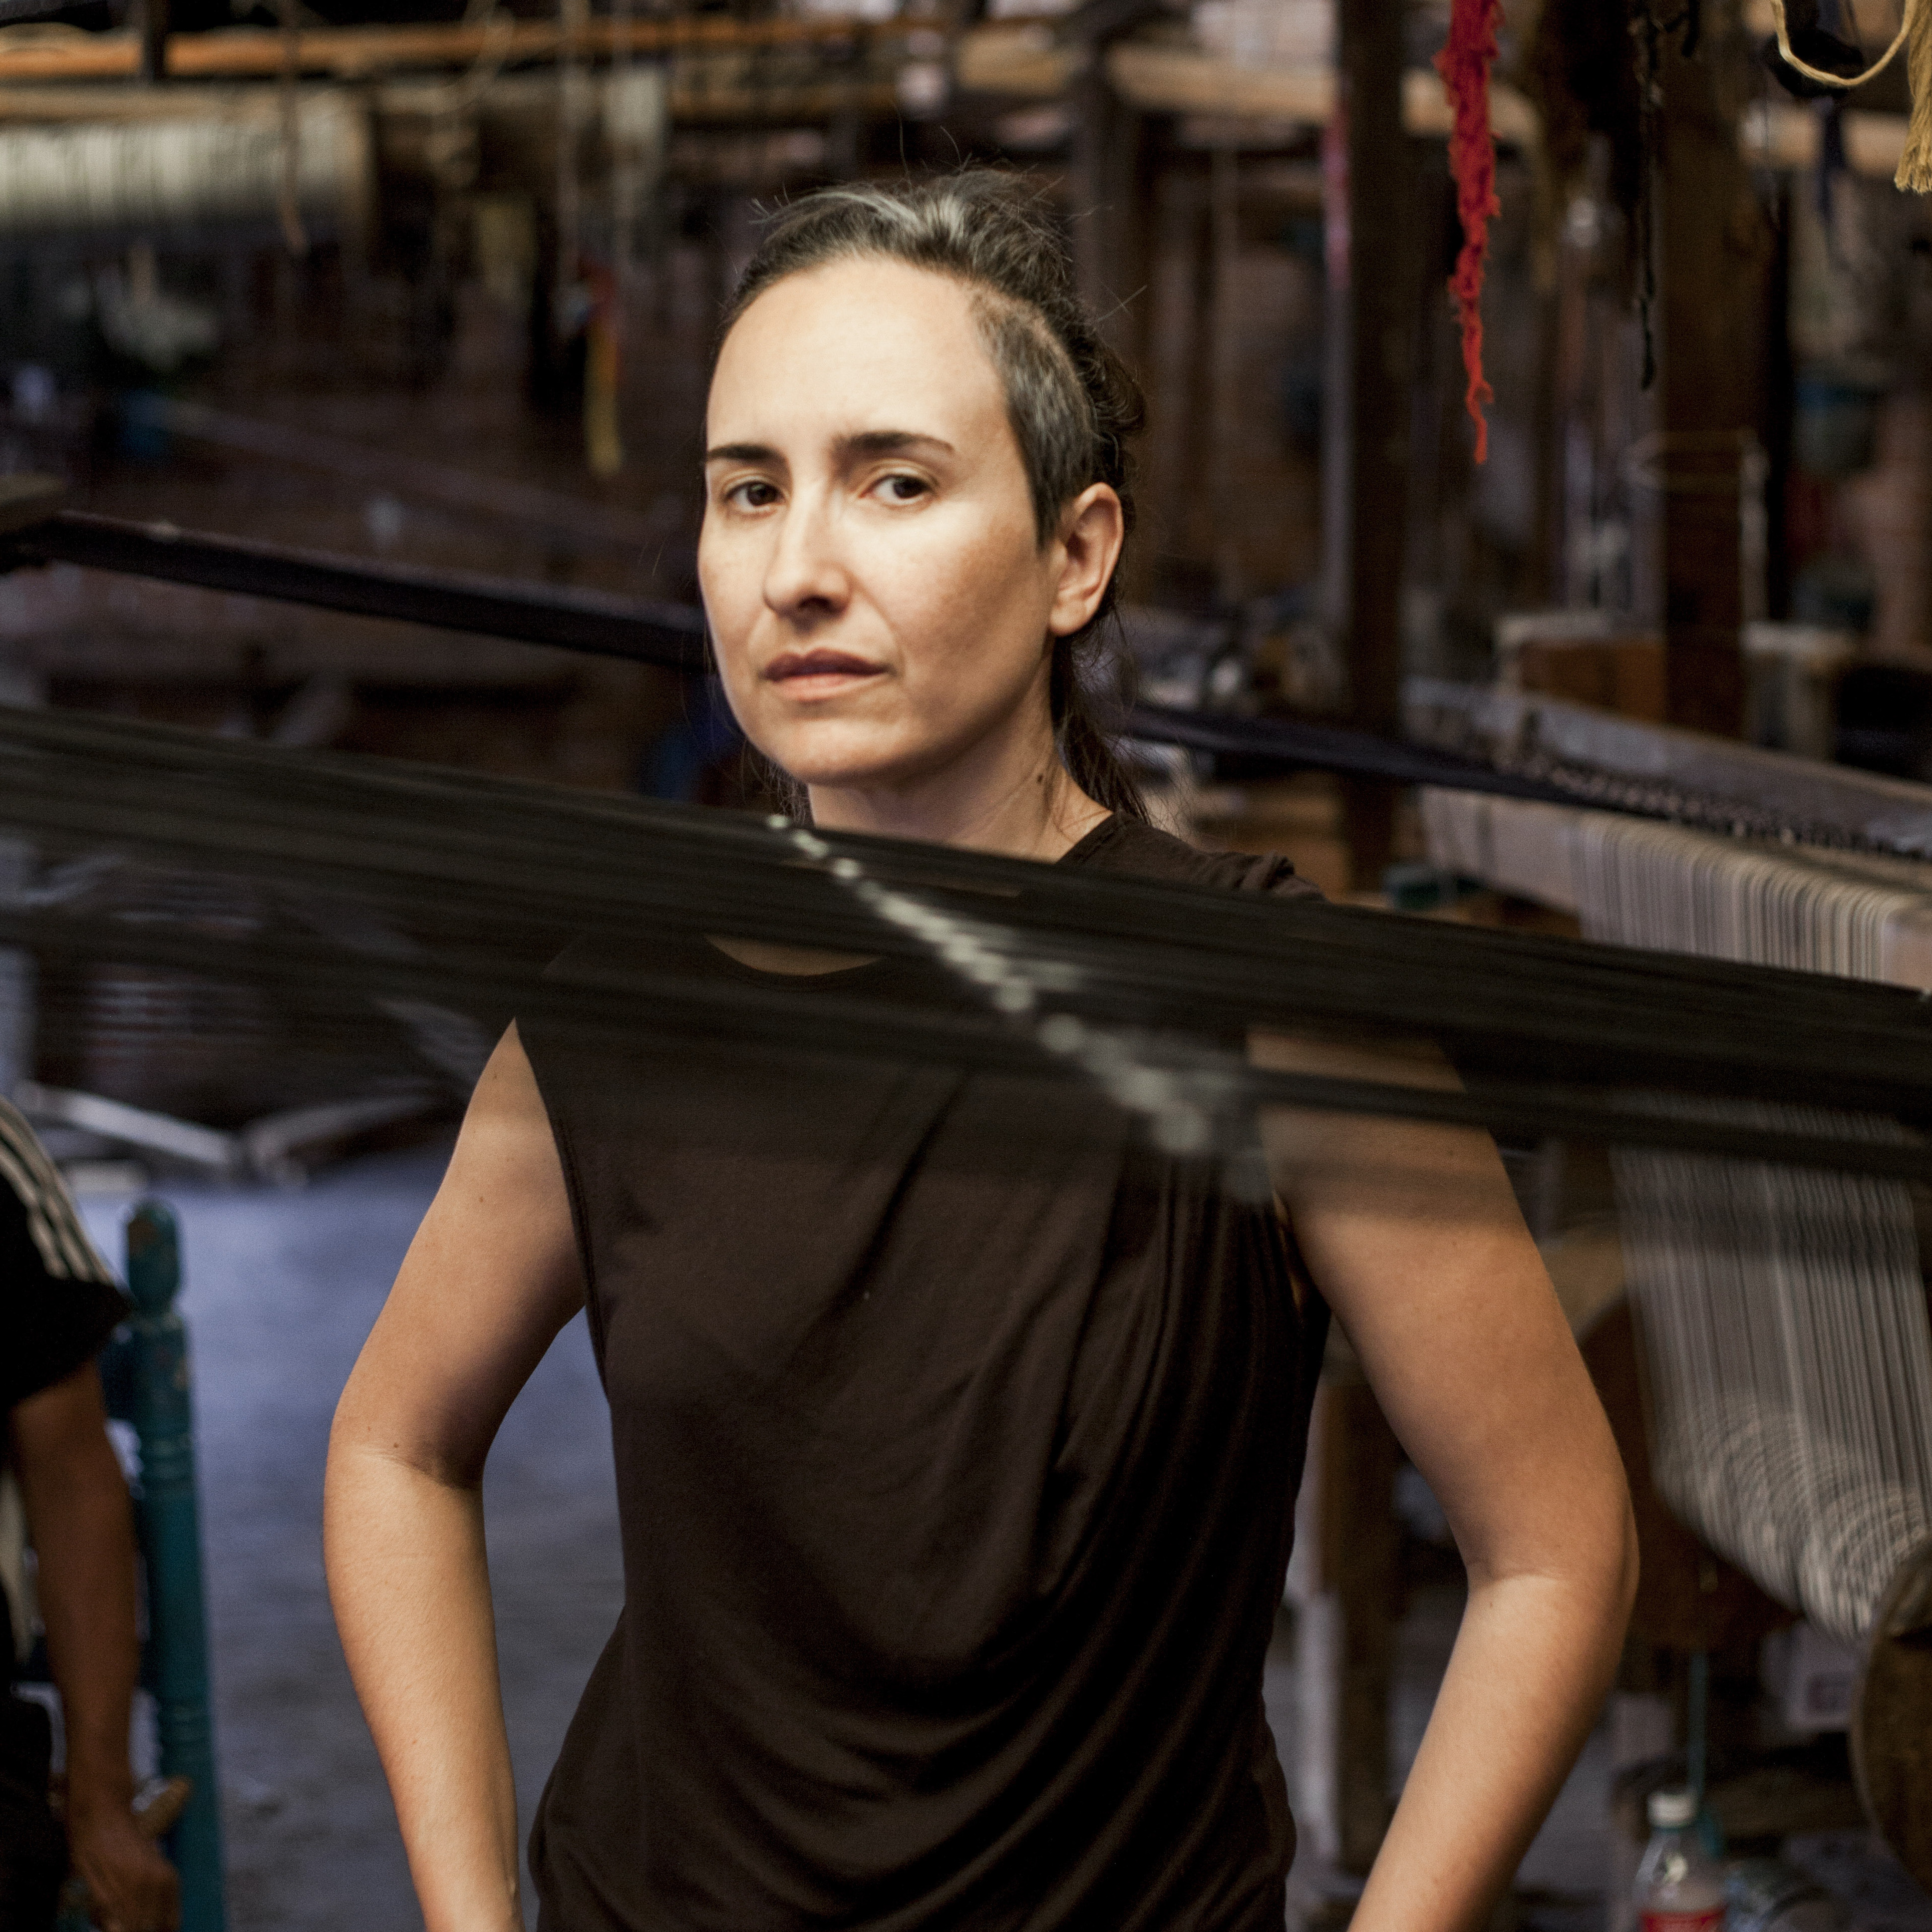 Mexican designer Carla Fernández visits a rebozo workshop in Tenancingo, Mexico. In her work, she uses fabrics made by weavers from across Mexico. The Isabella Stewart Gardner Museum in Boston is exhibiting Fernández's pieces this summer.